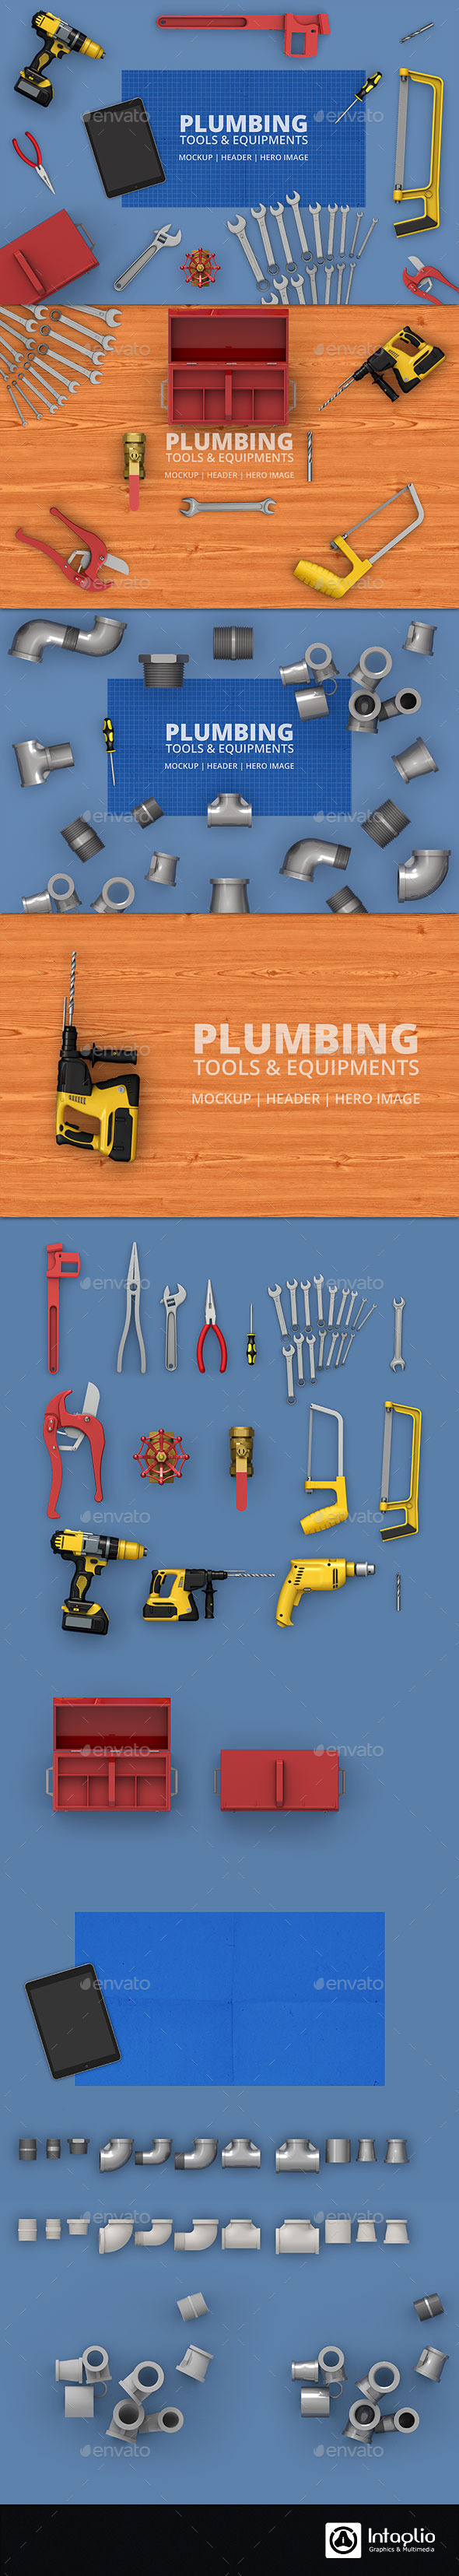 Plumbing Tools & Equipment's Mockup | Hero-Image - Hero Images Graphics